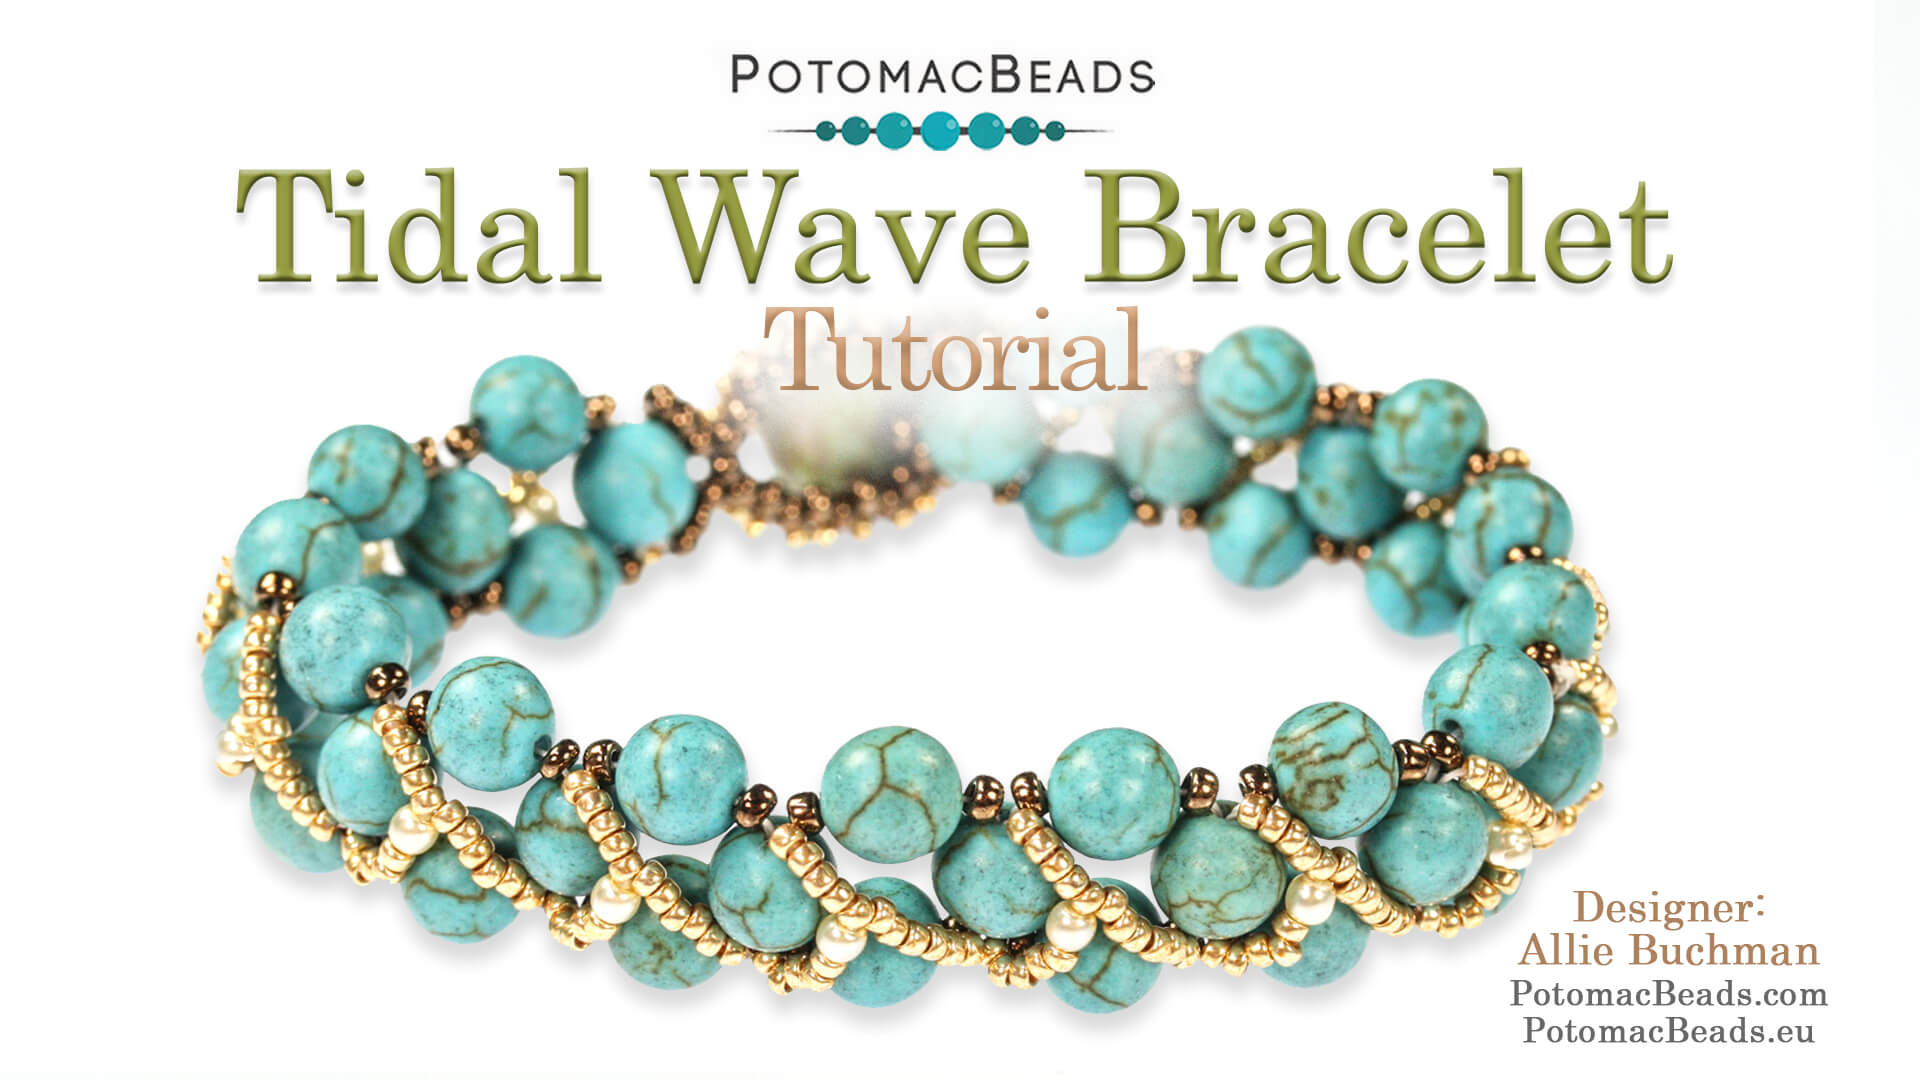 How to Bead Jewelry / Beading Tutorials & Jewel Making Videos / Right Angle Weave (RAW) Videos / Tidal Wave Bracelet Tutorial